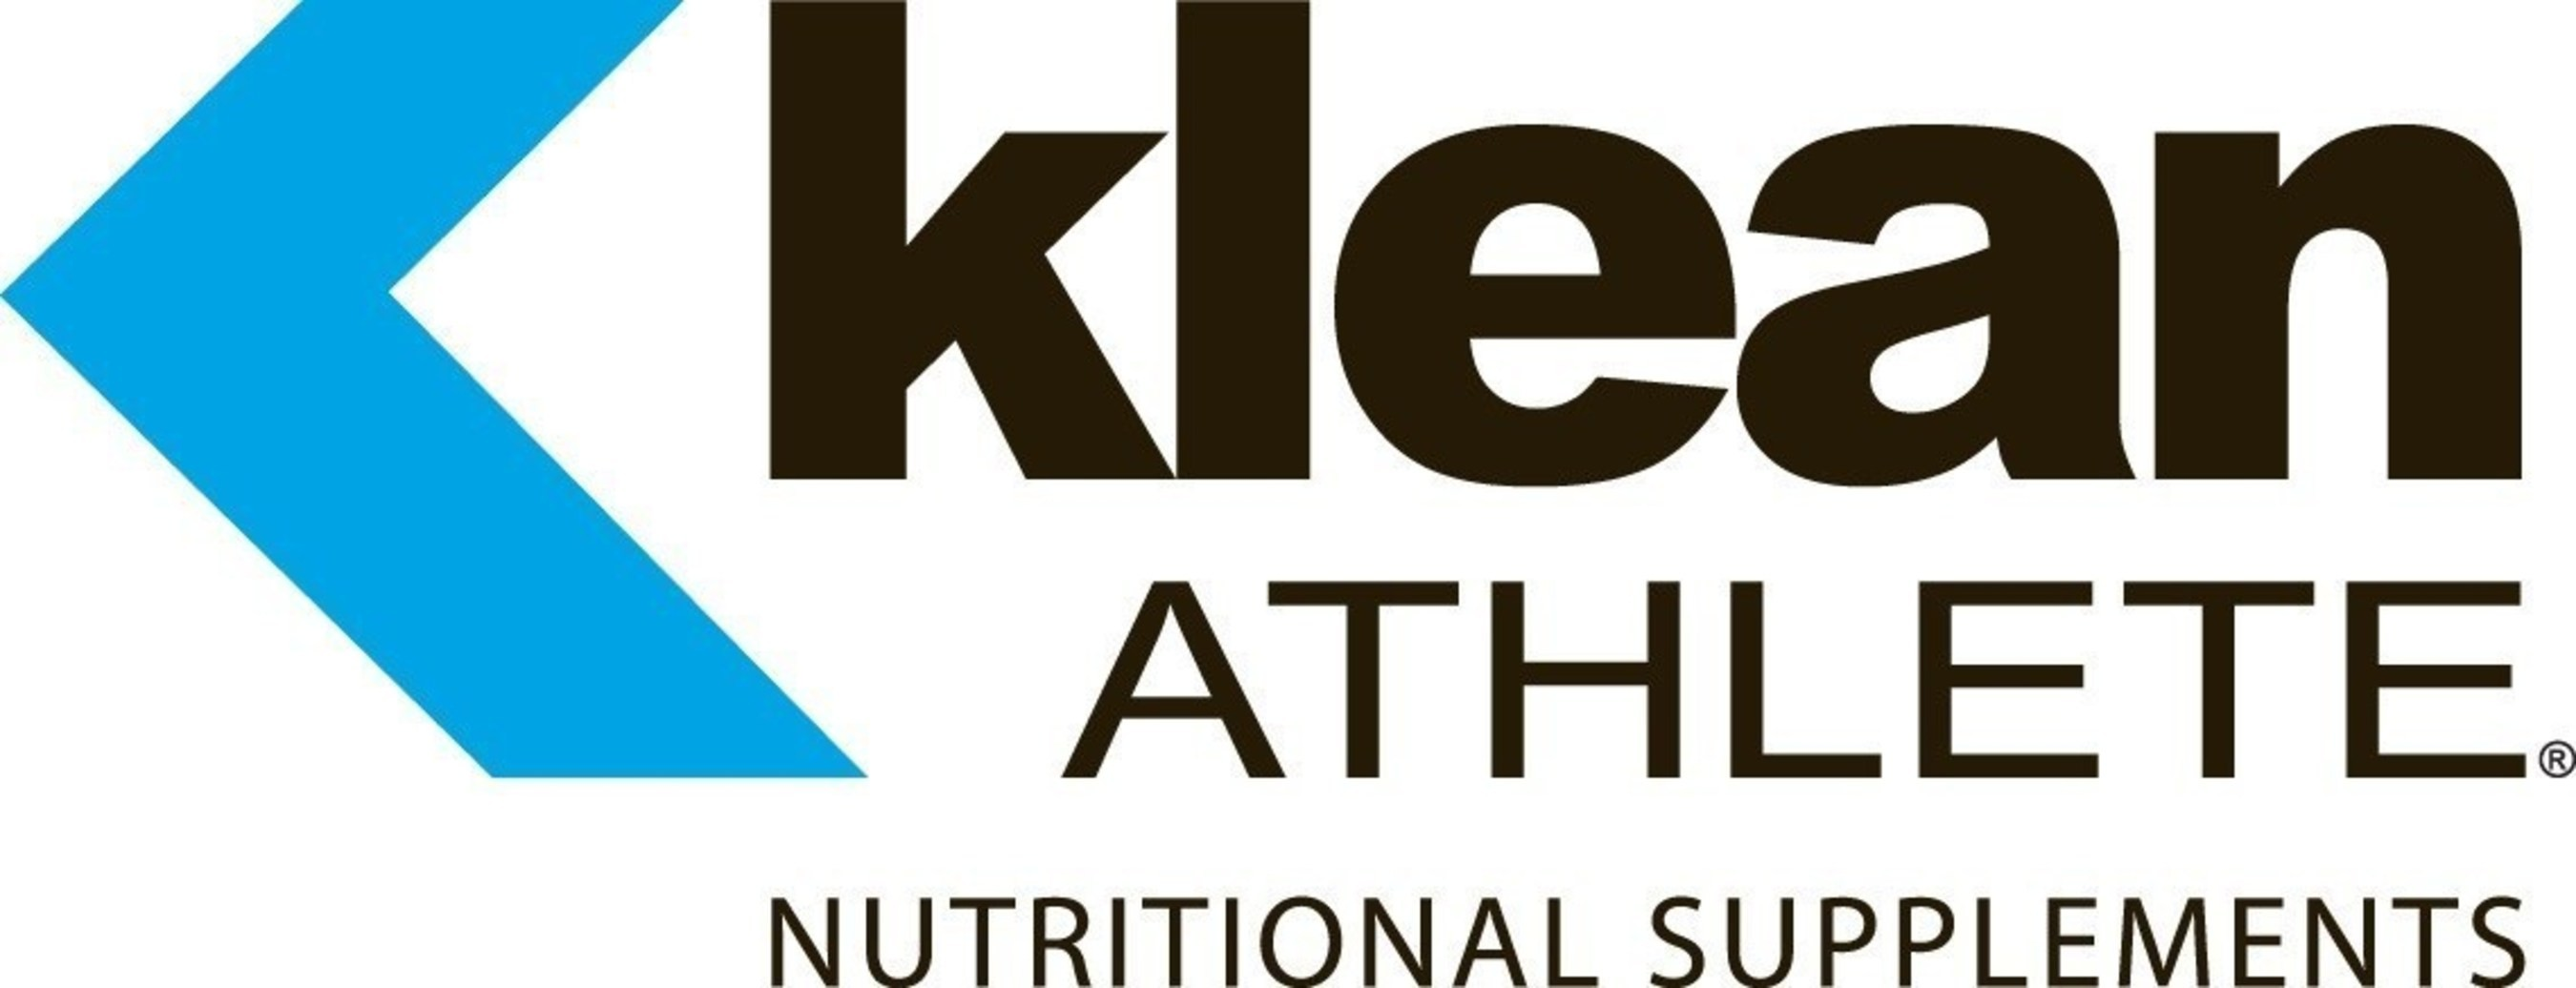 KLEAN ATHLETE®